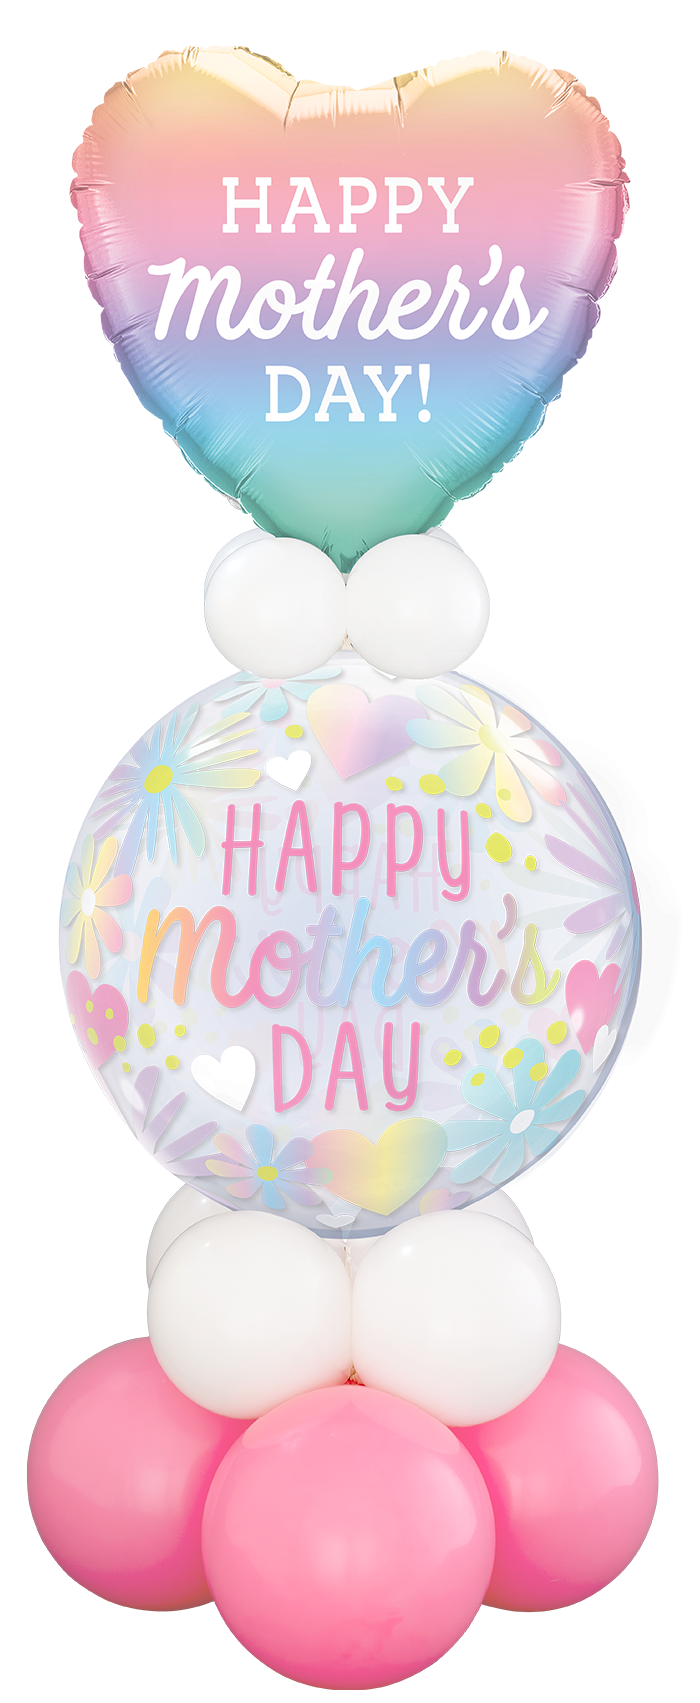 Mother's Day Floral Bubble Balloon Stand Up